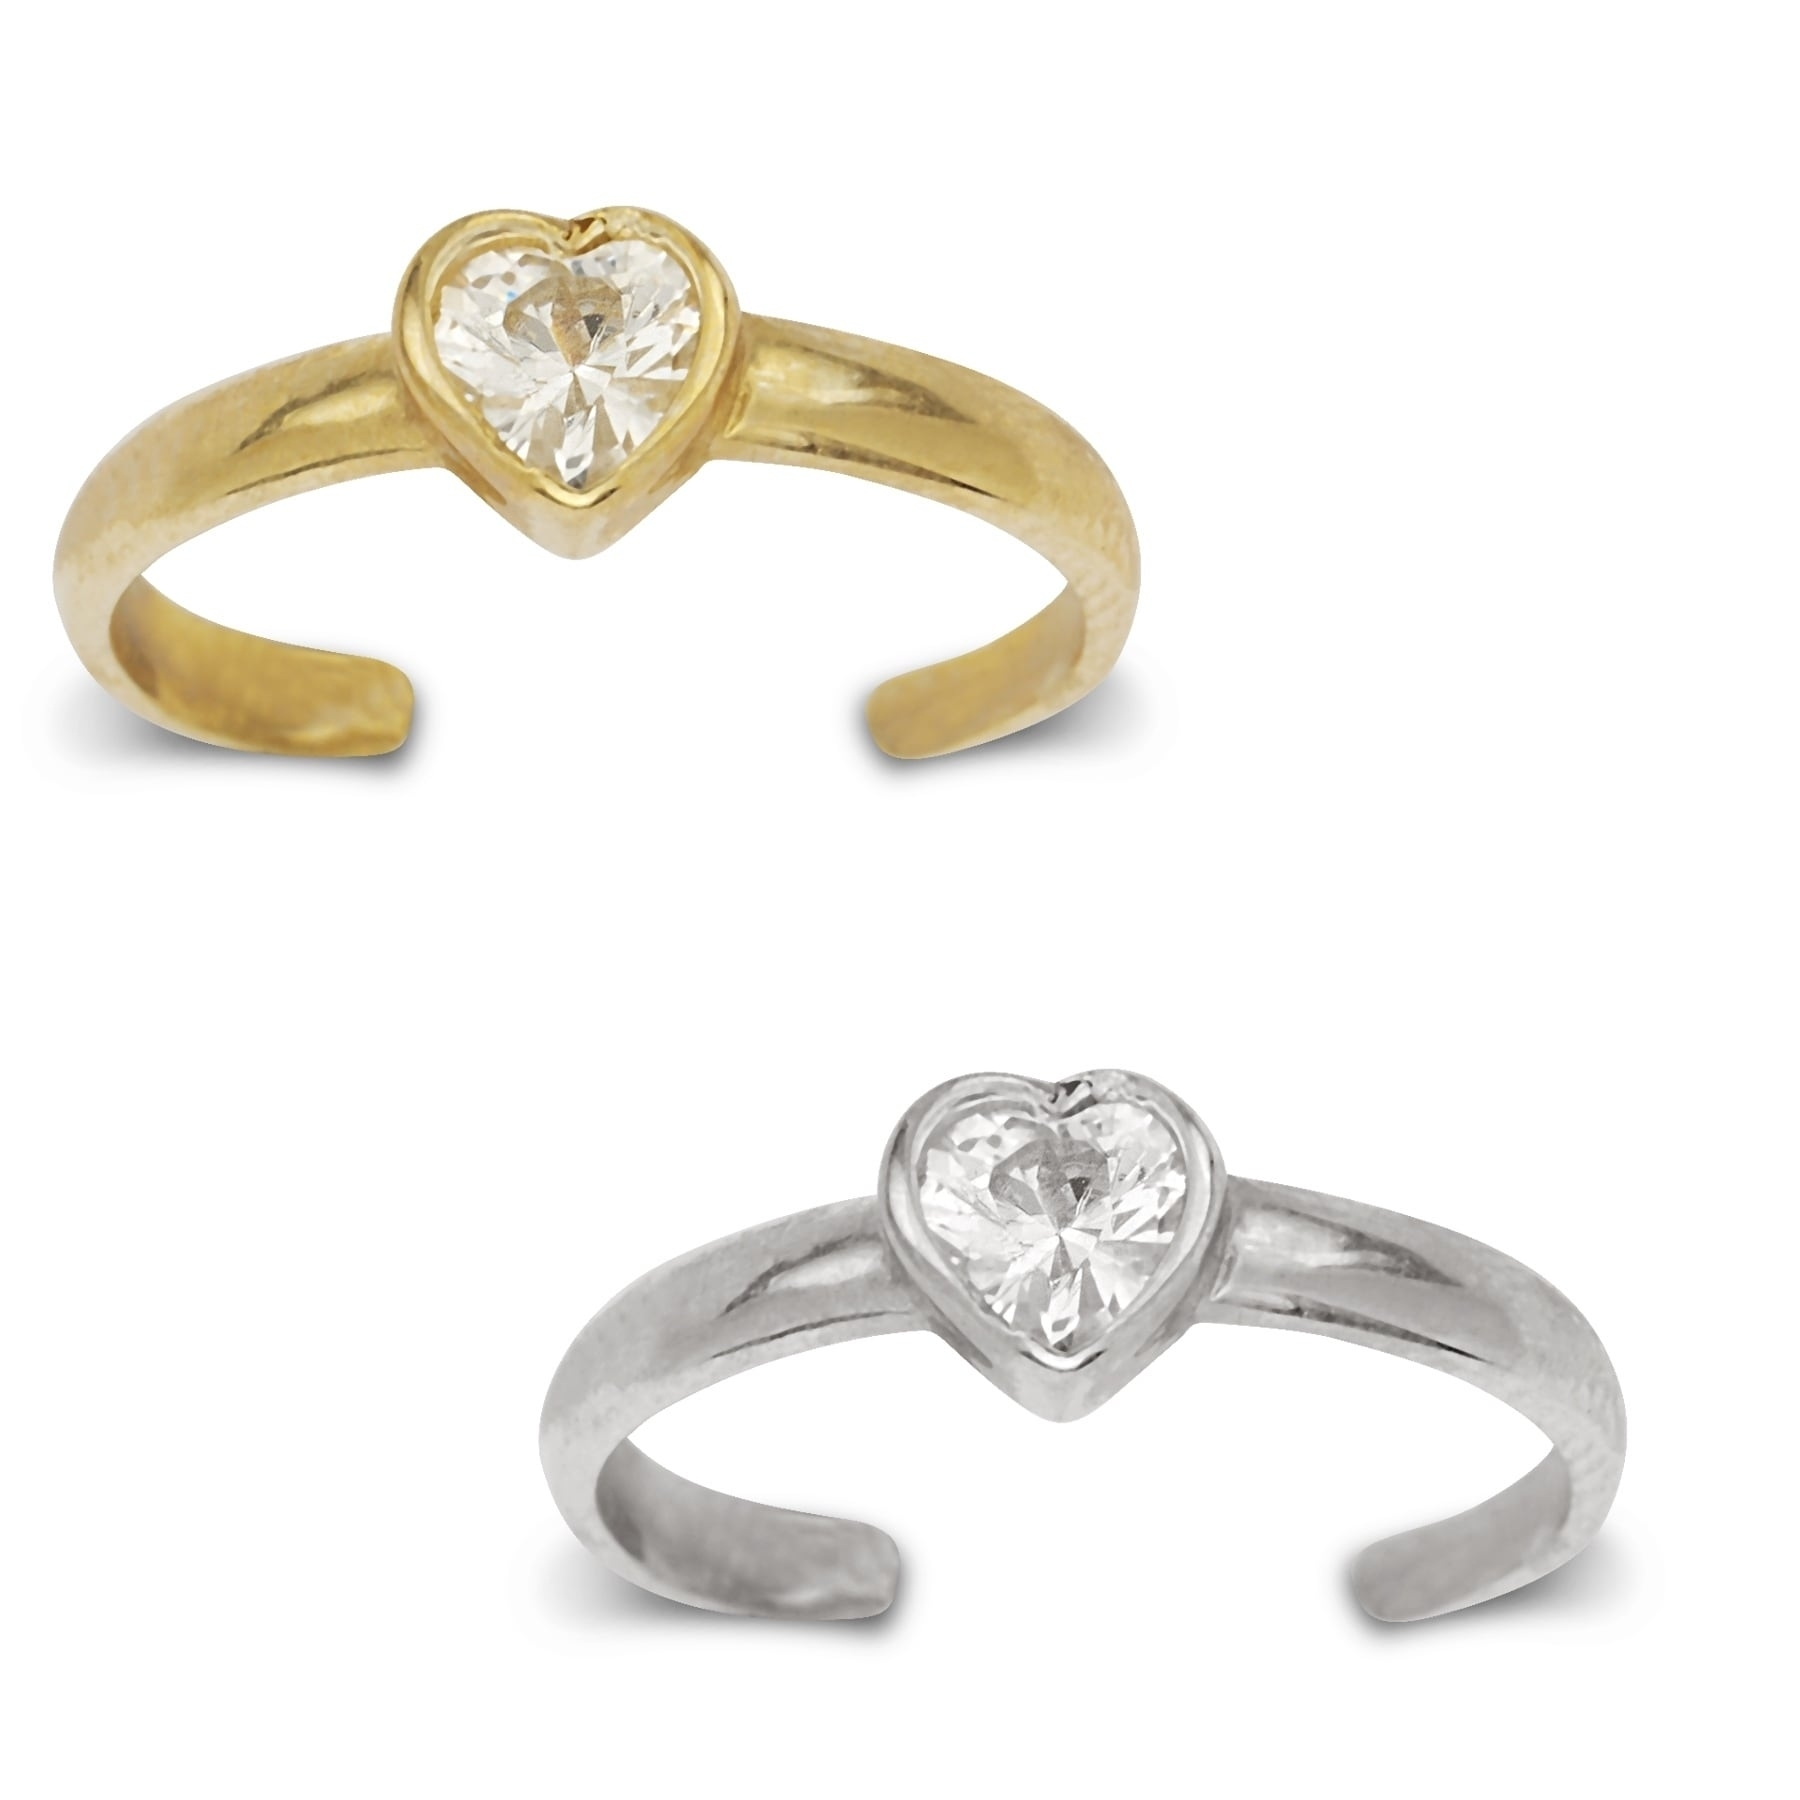 14K Yellow Or White Gold Adjustable Heart Shaped Cubic Zirconia Within Best And Newest Toe Rings With Cubic Zirconia (View 2 of 15)